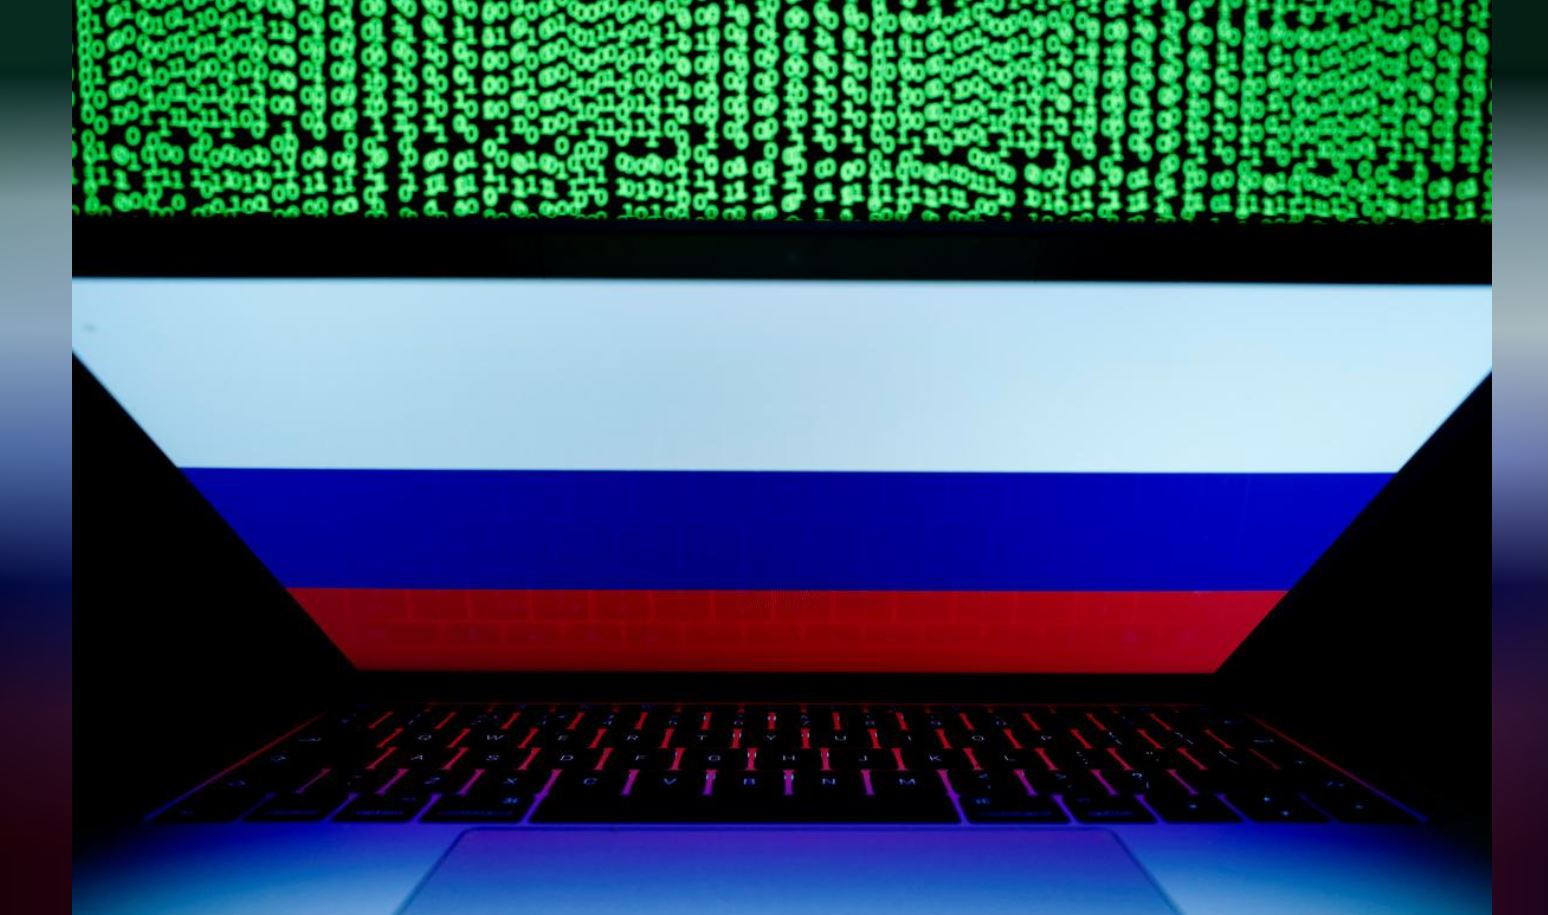 Papers leaked before UK election in suspected Russian operation were hacked from ex-trade minister